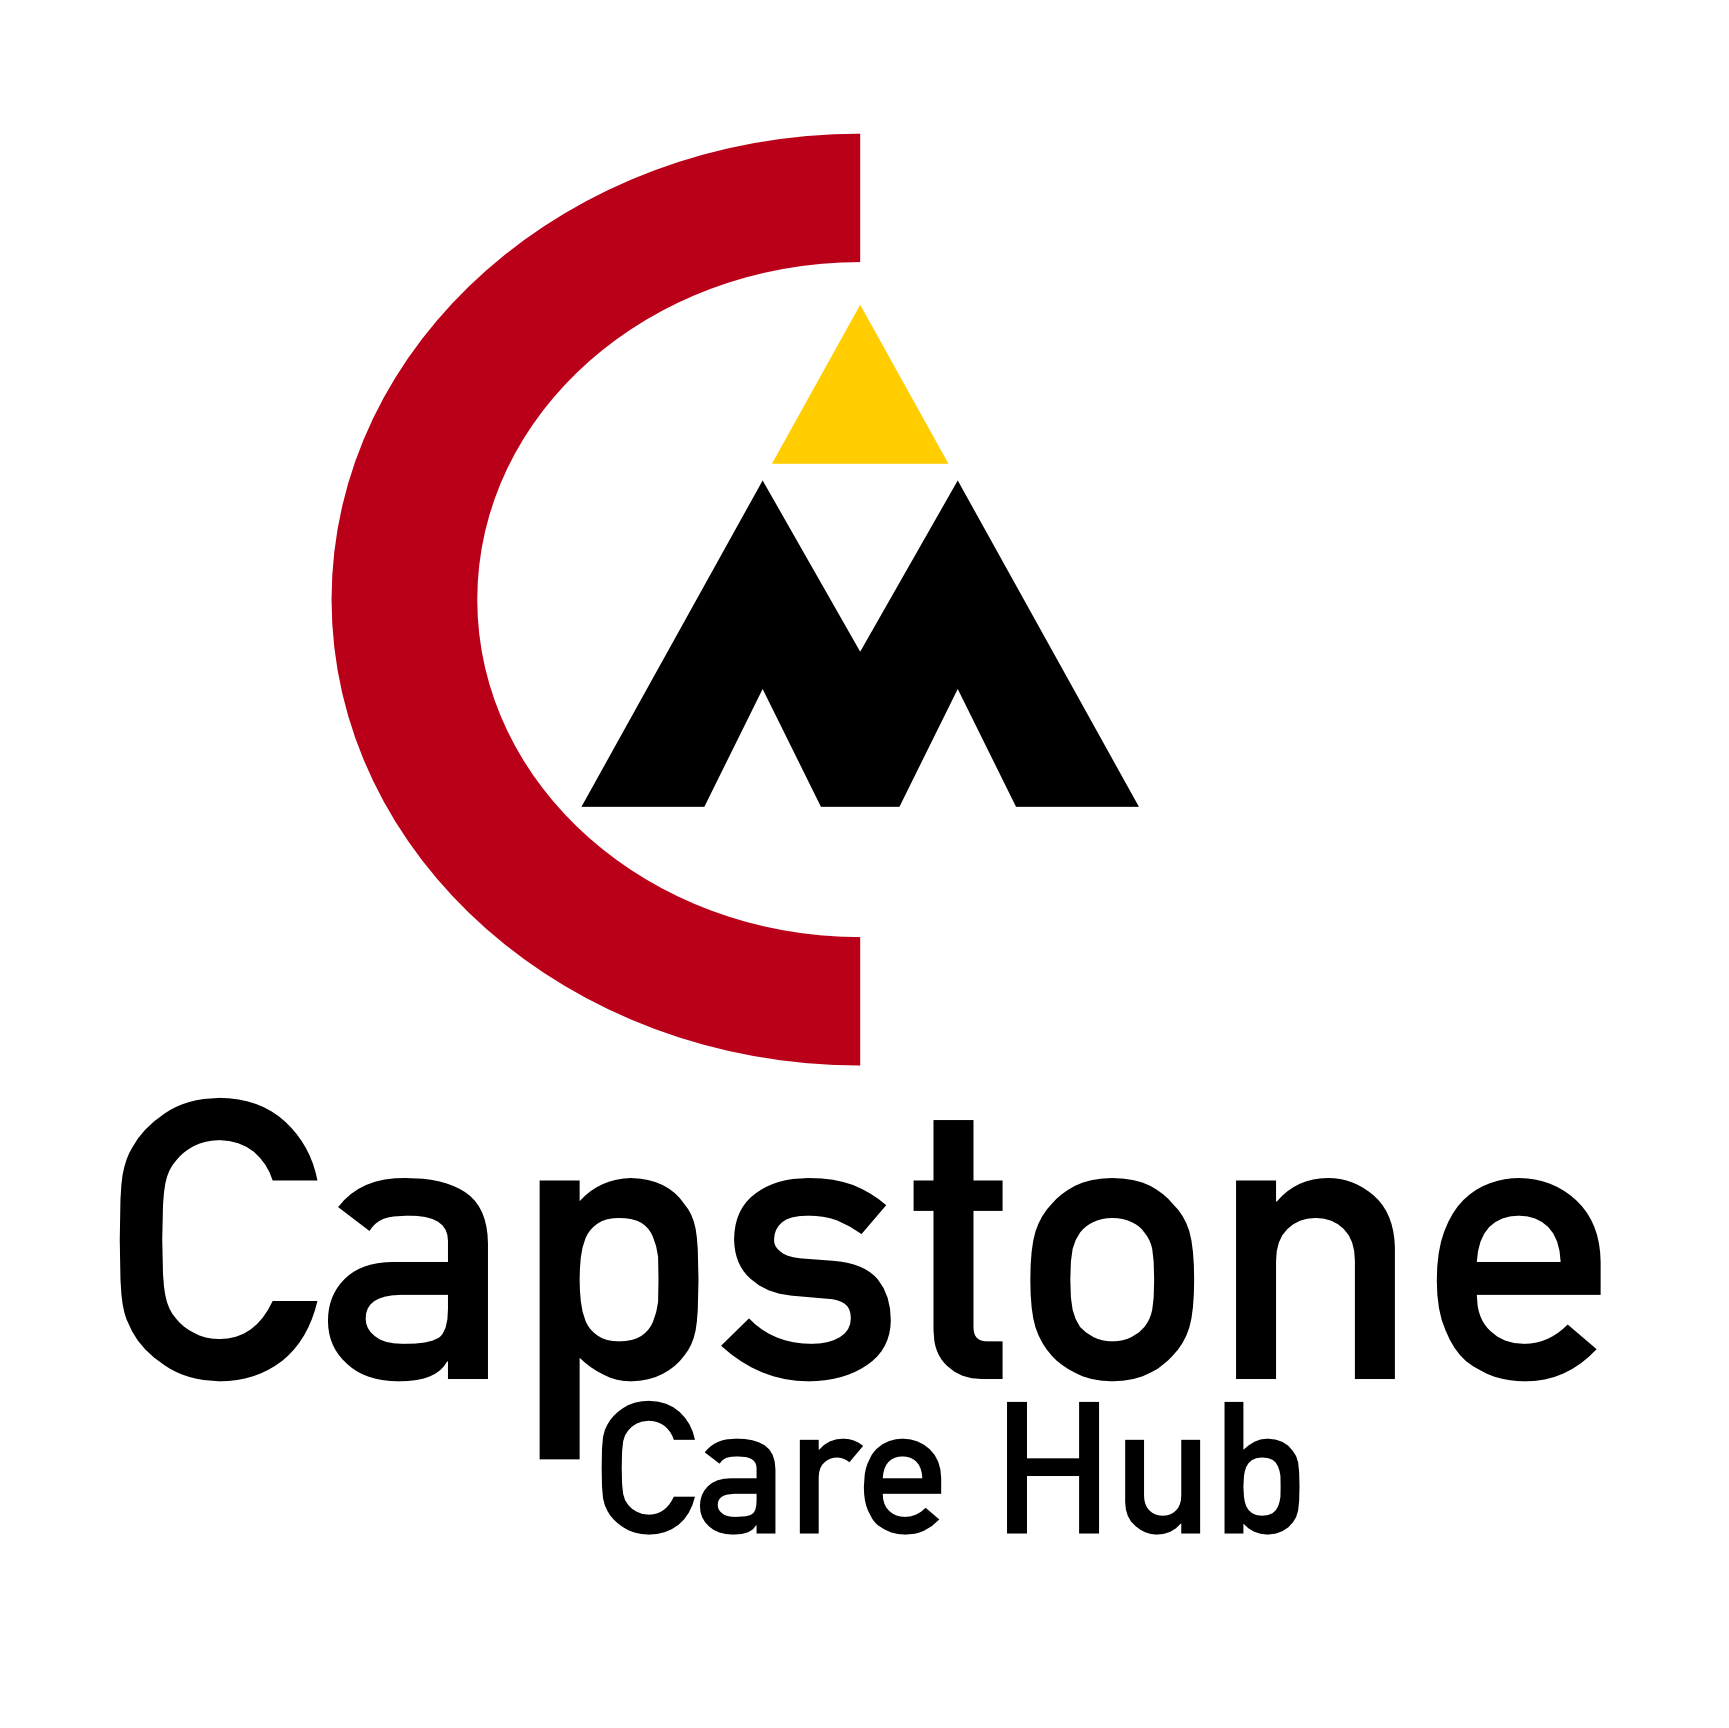 Capstone Manangement Care Hub